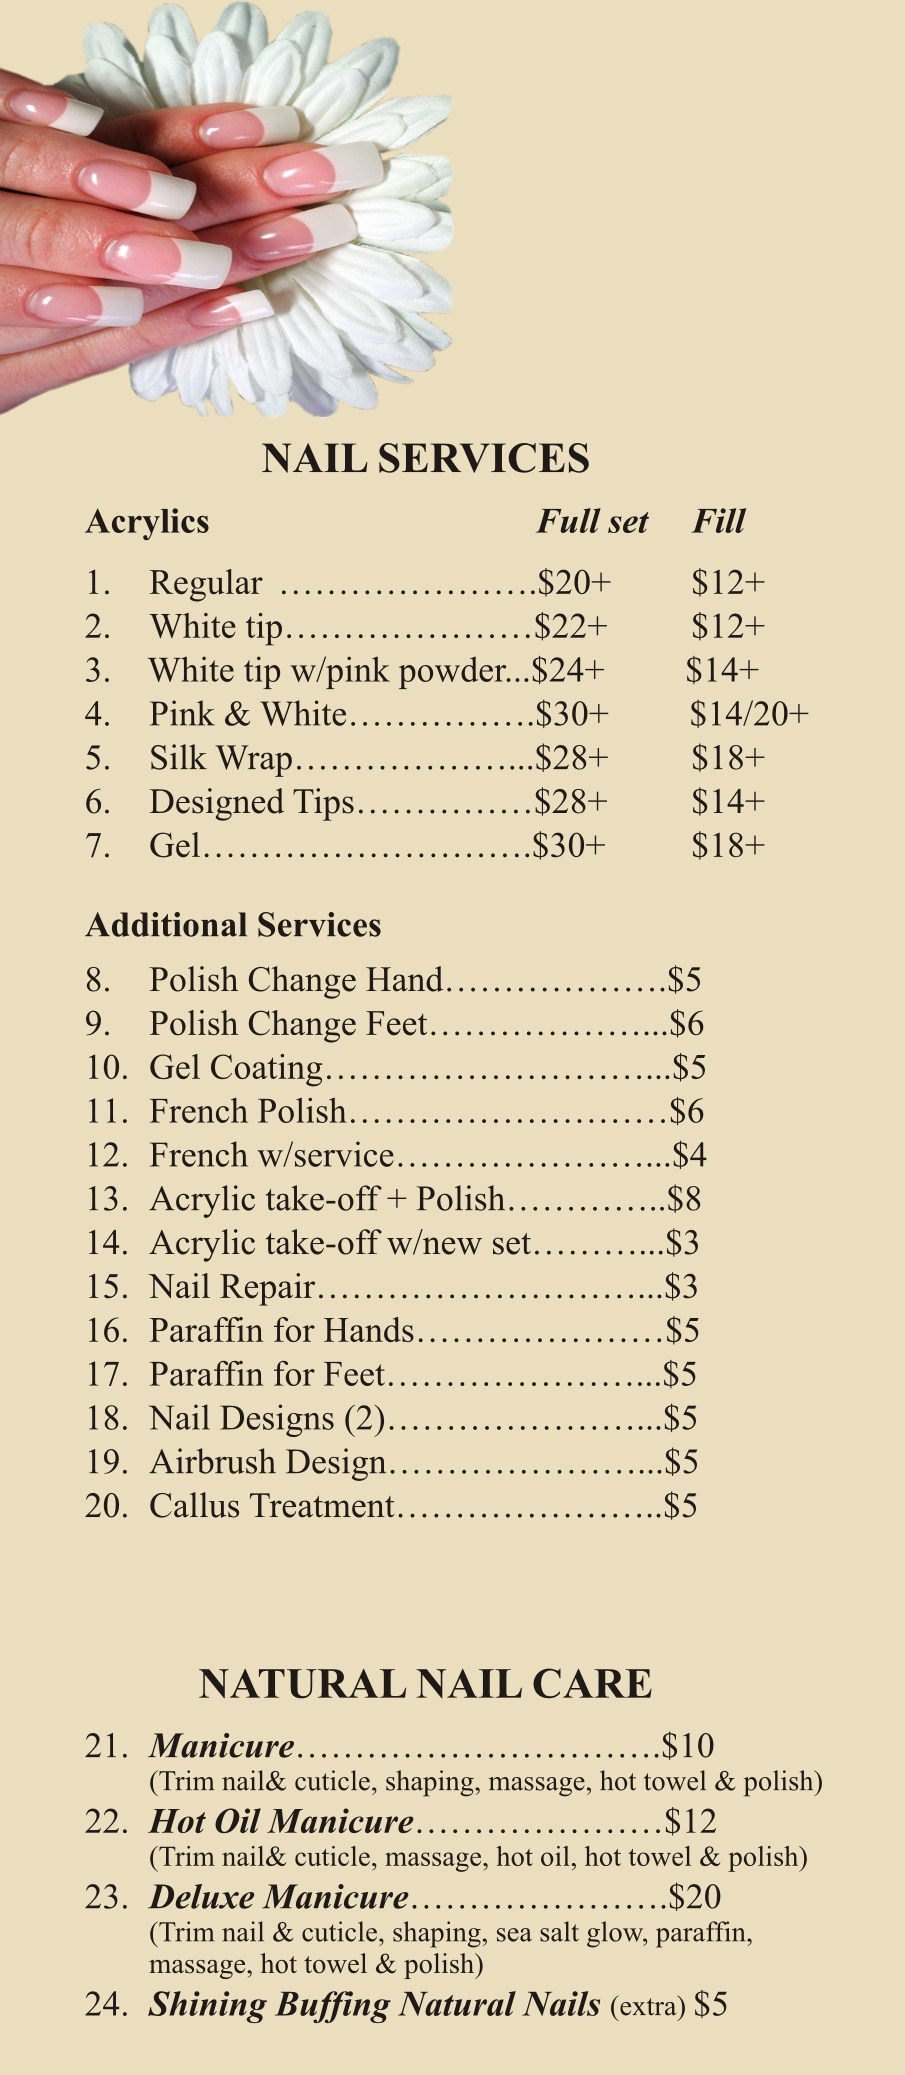 Price list for A list nail salon